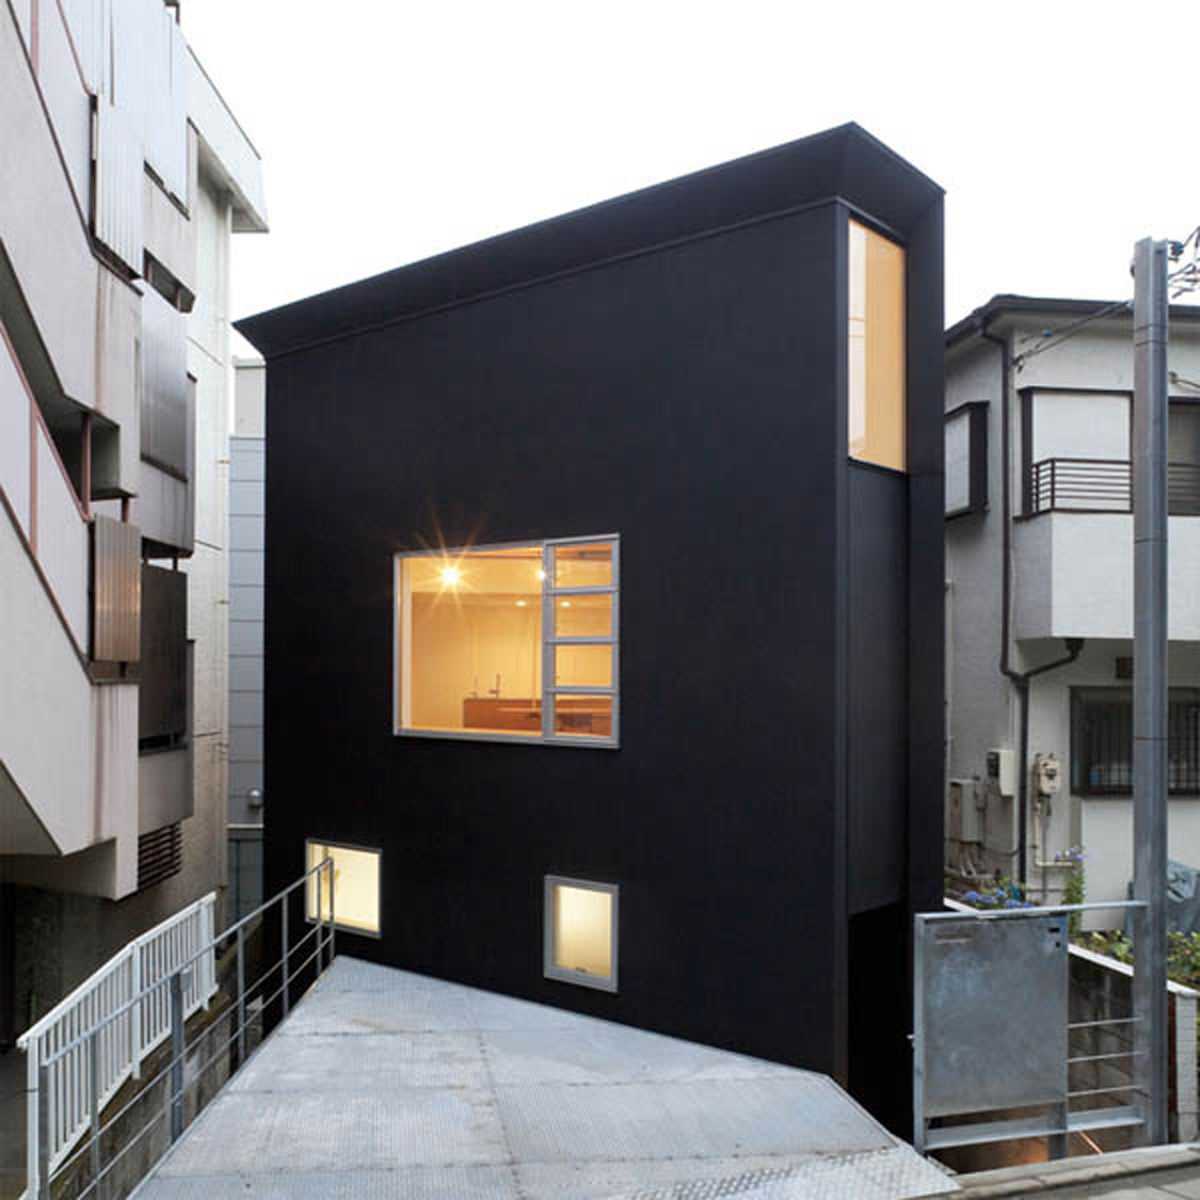 Minimalist japanese house layouts for Modern japanese house interior design